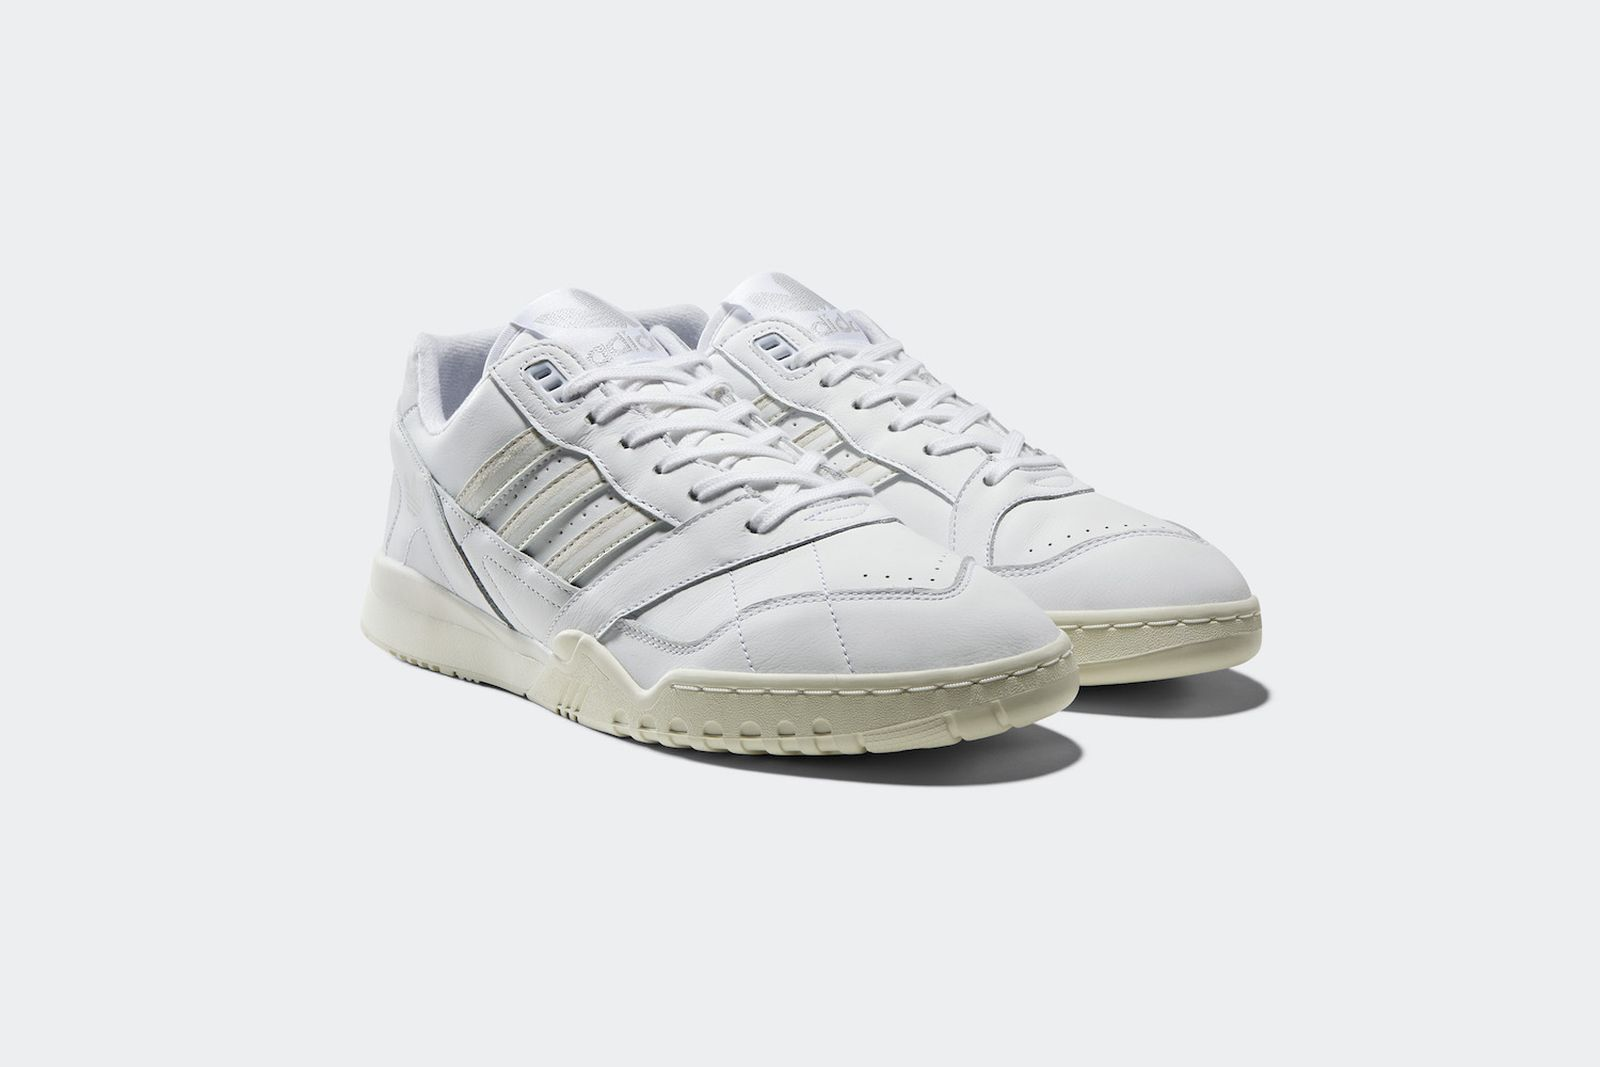 adidas originals sc premiere and ar trainer release date price info adidas Originals A.R. Trainer